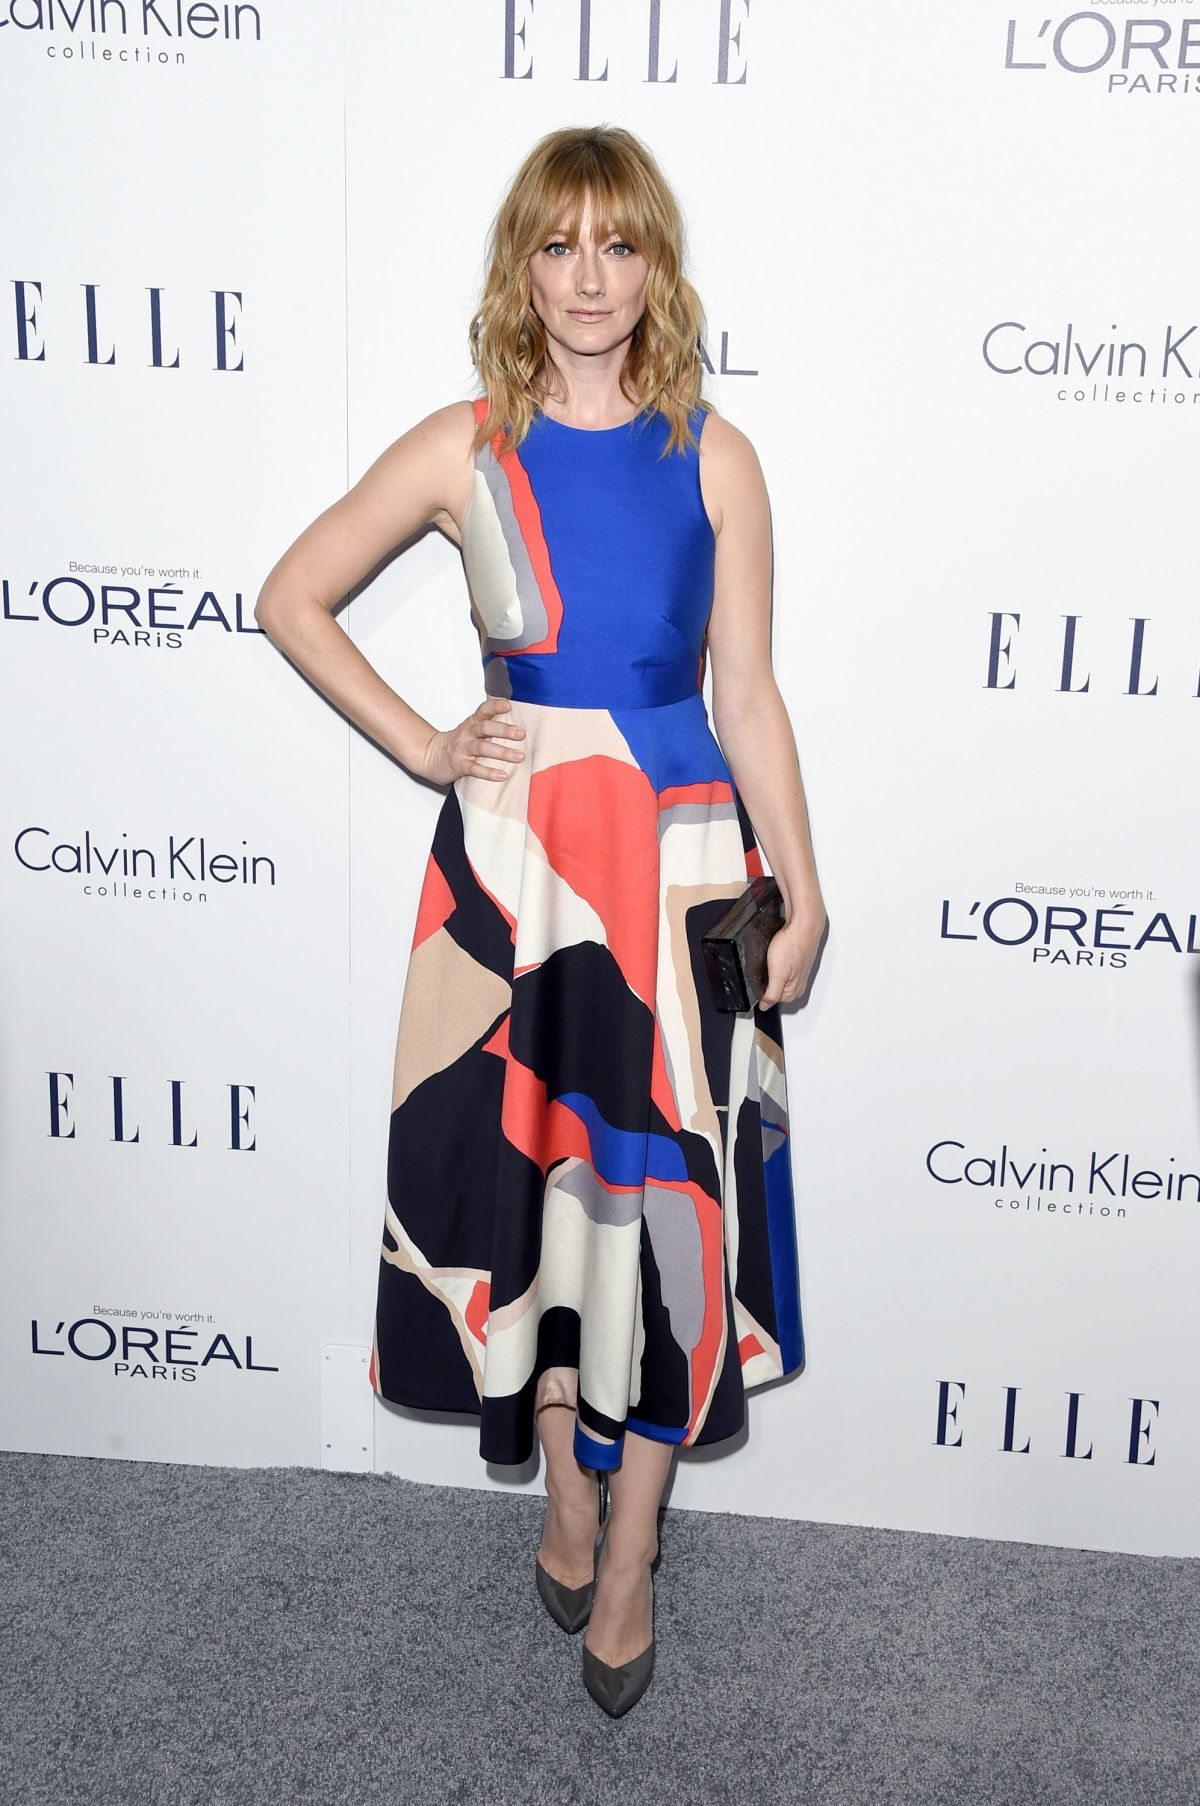 JUDY GREER at 2015 Elle Women in Hollywood Awards in Los Angeles 10/19/2015